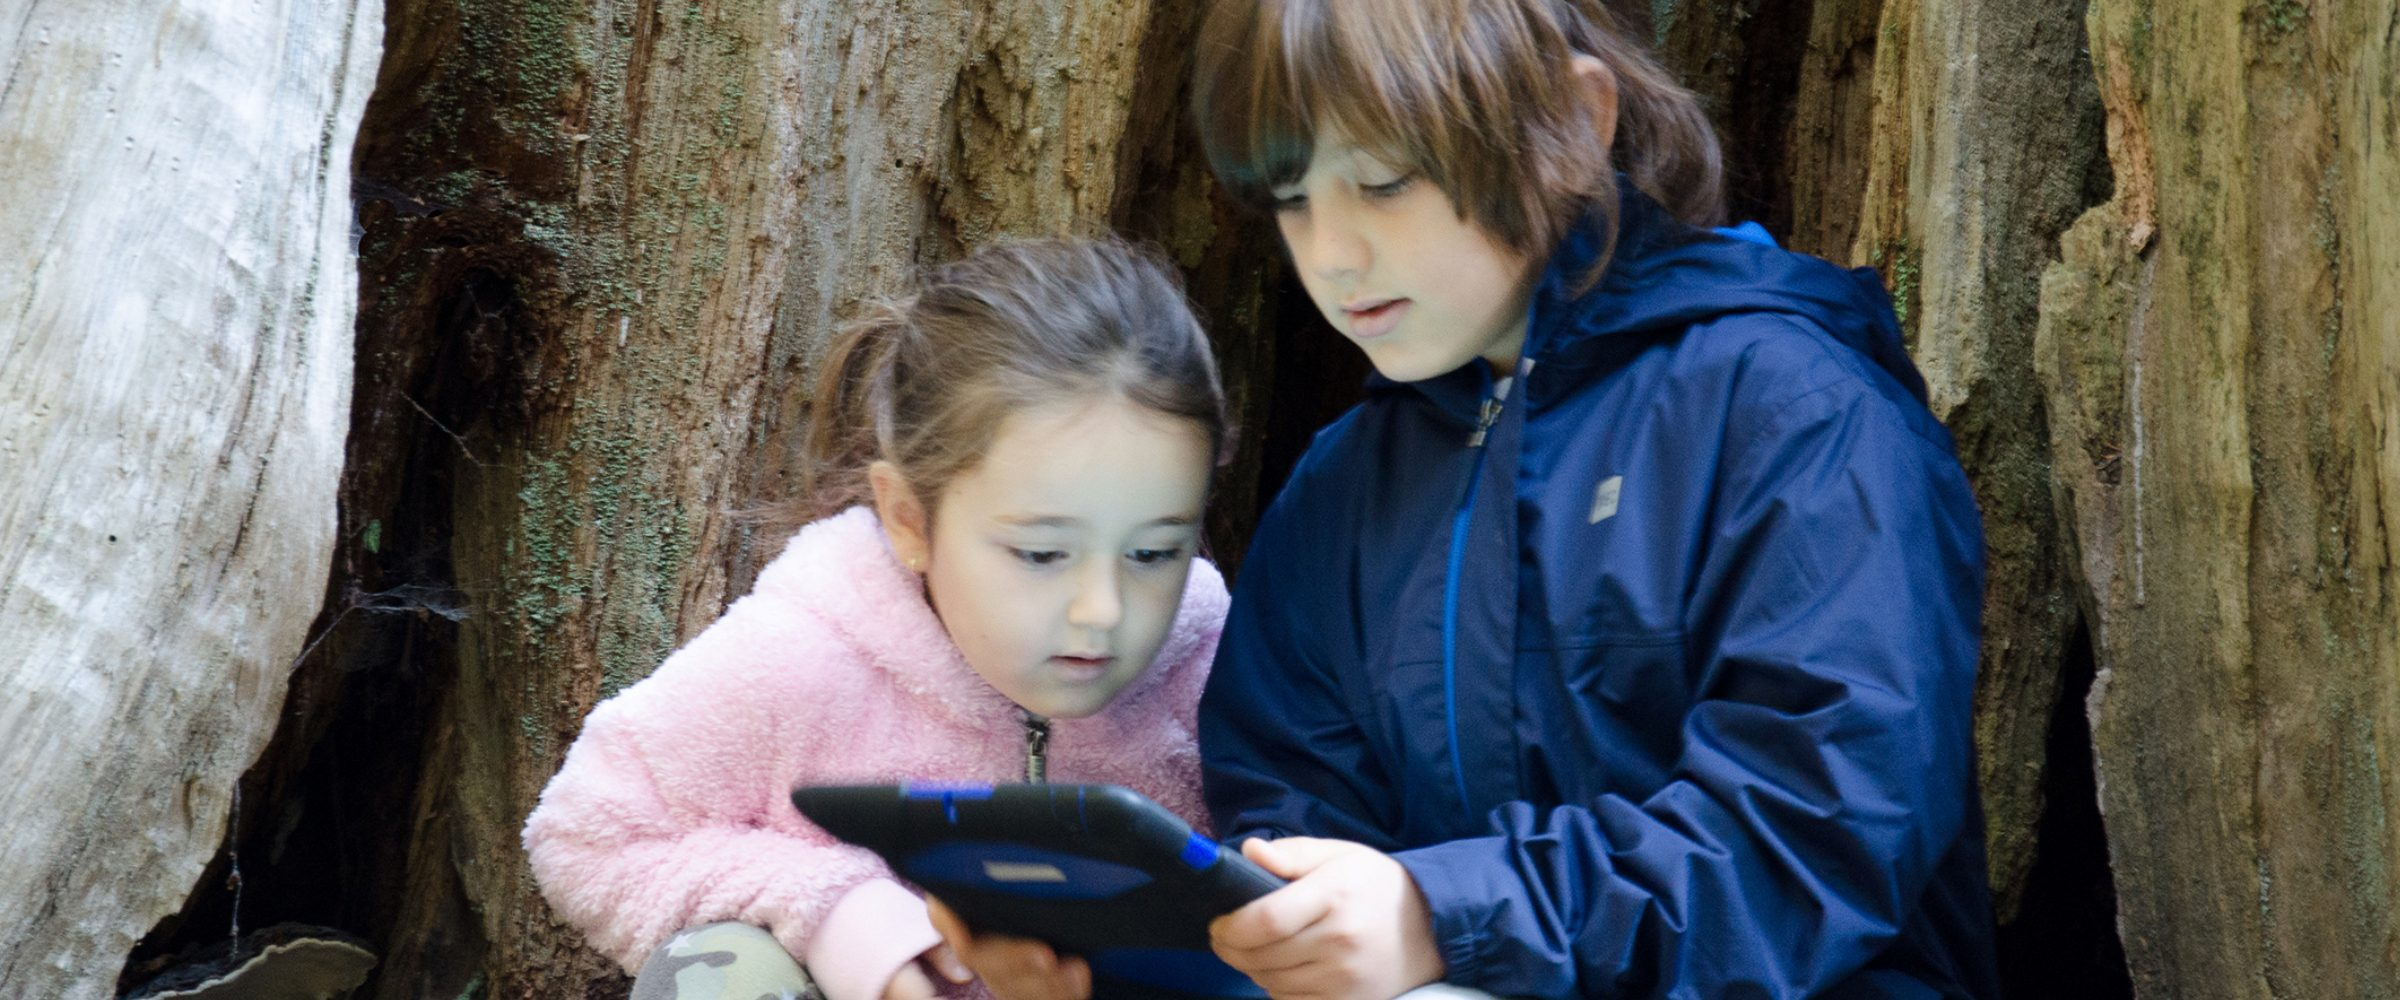 Two young children share a tablet device